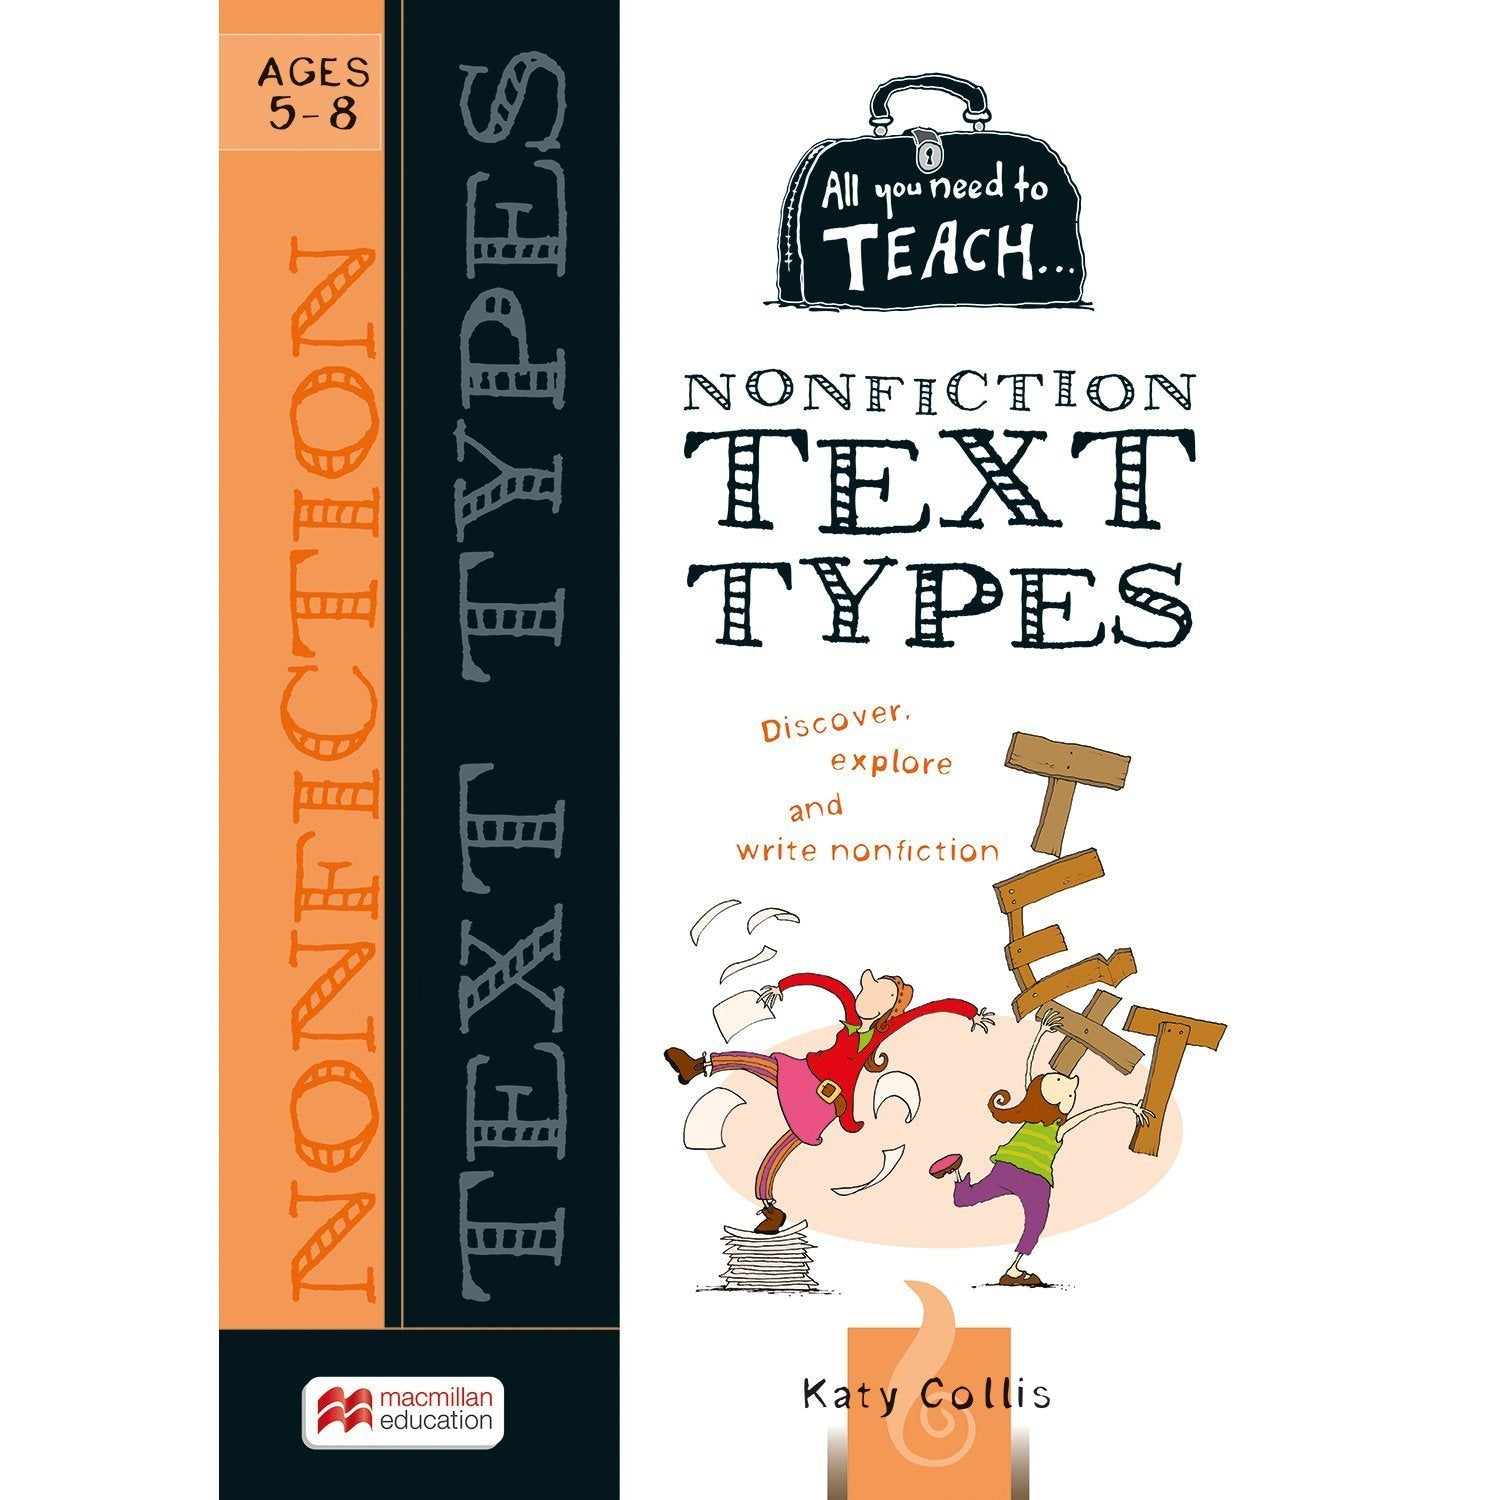 All You Need to Teach: Non Fiction Text Ages 5-8